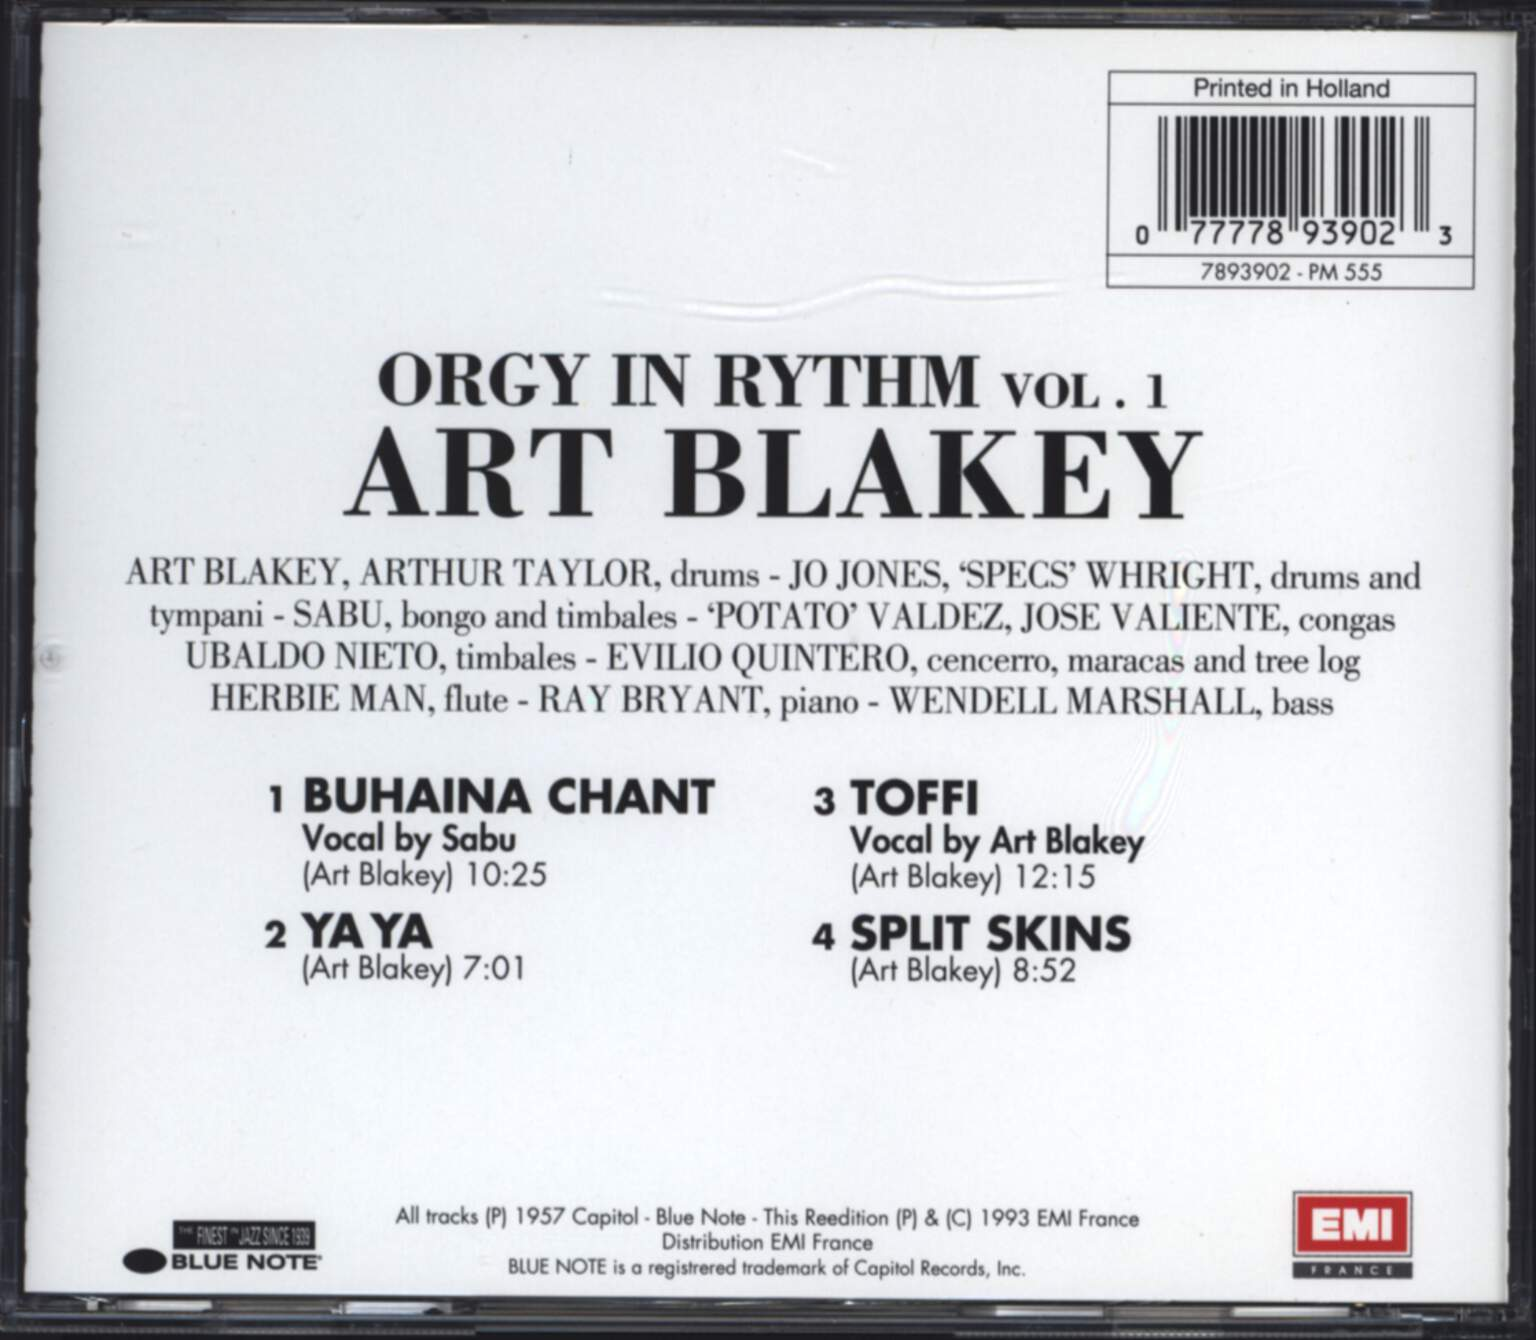 Art Blakey: Orgy In Rhythm vol.1, CD